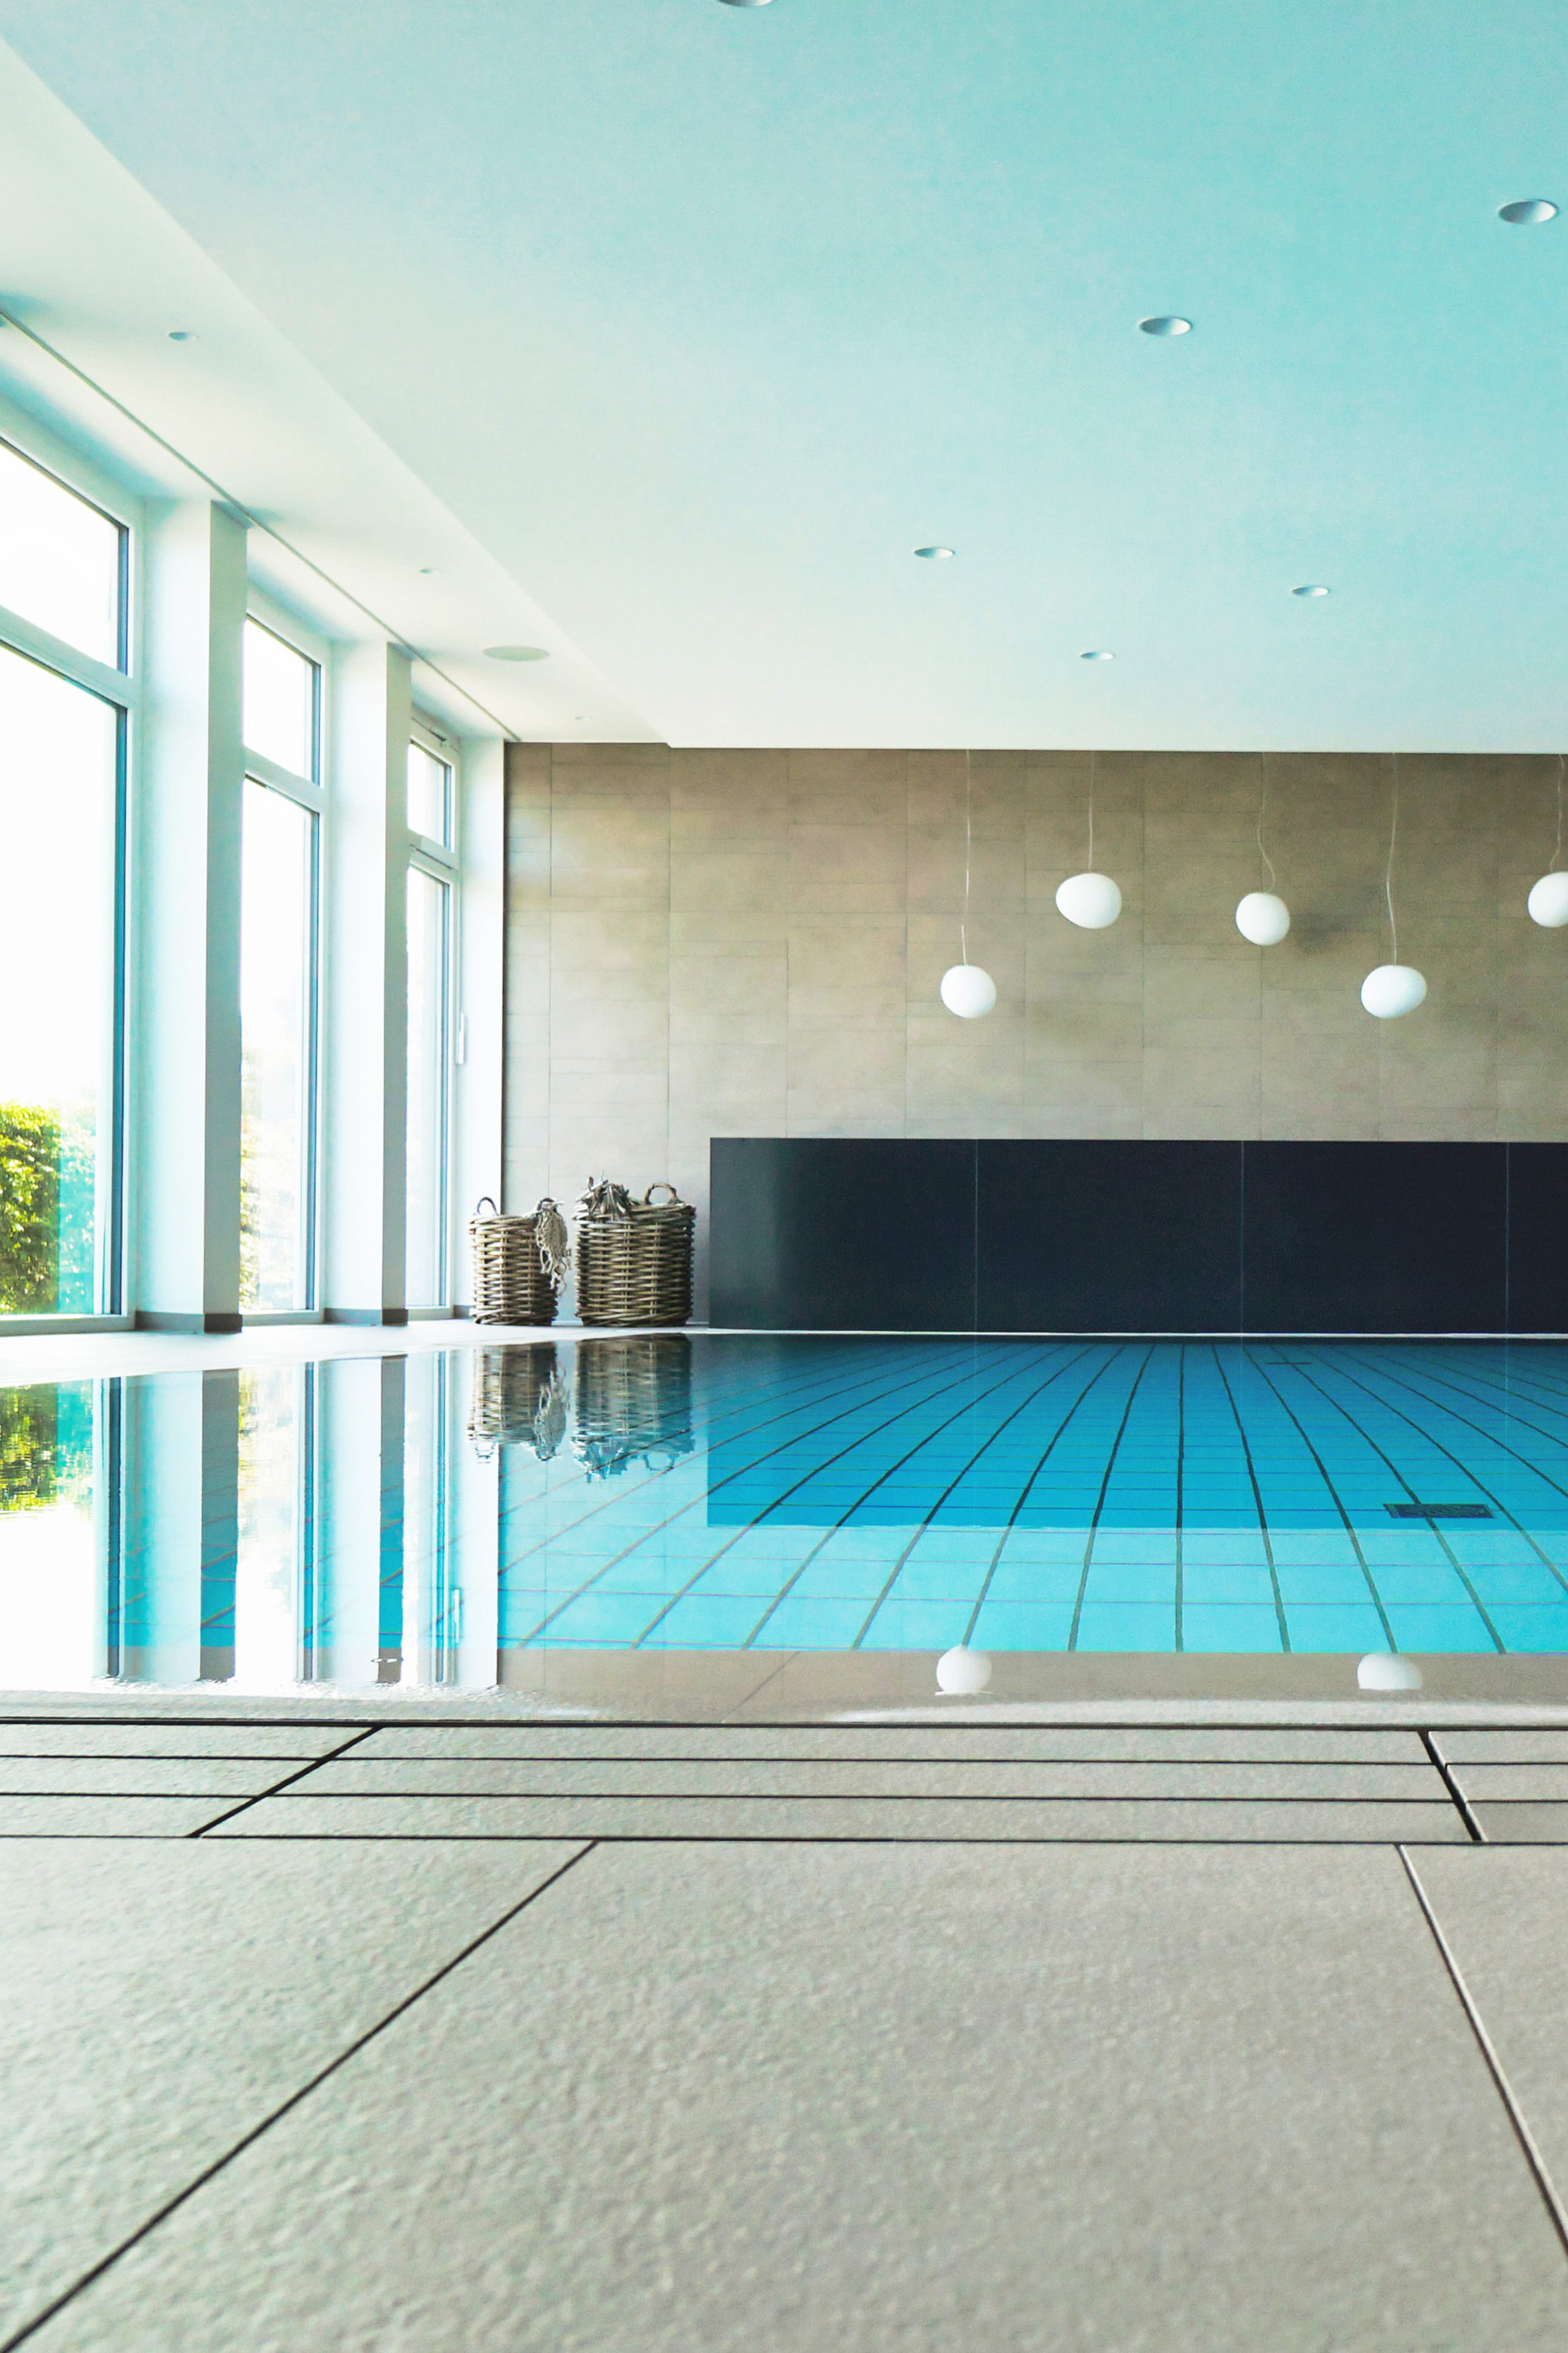 Hotel Strandhus Cuxhaven Relax Wellness Hotel Pool